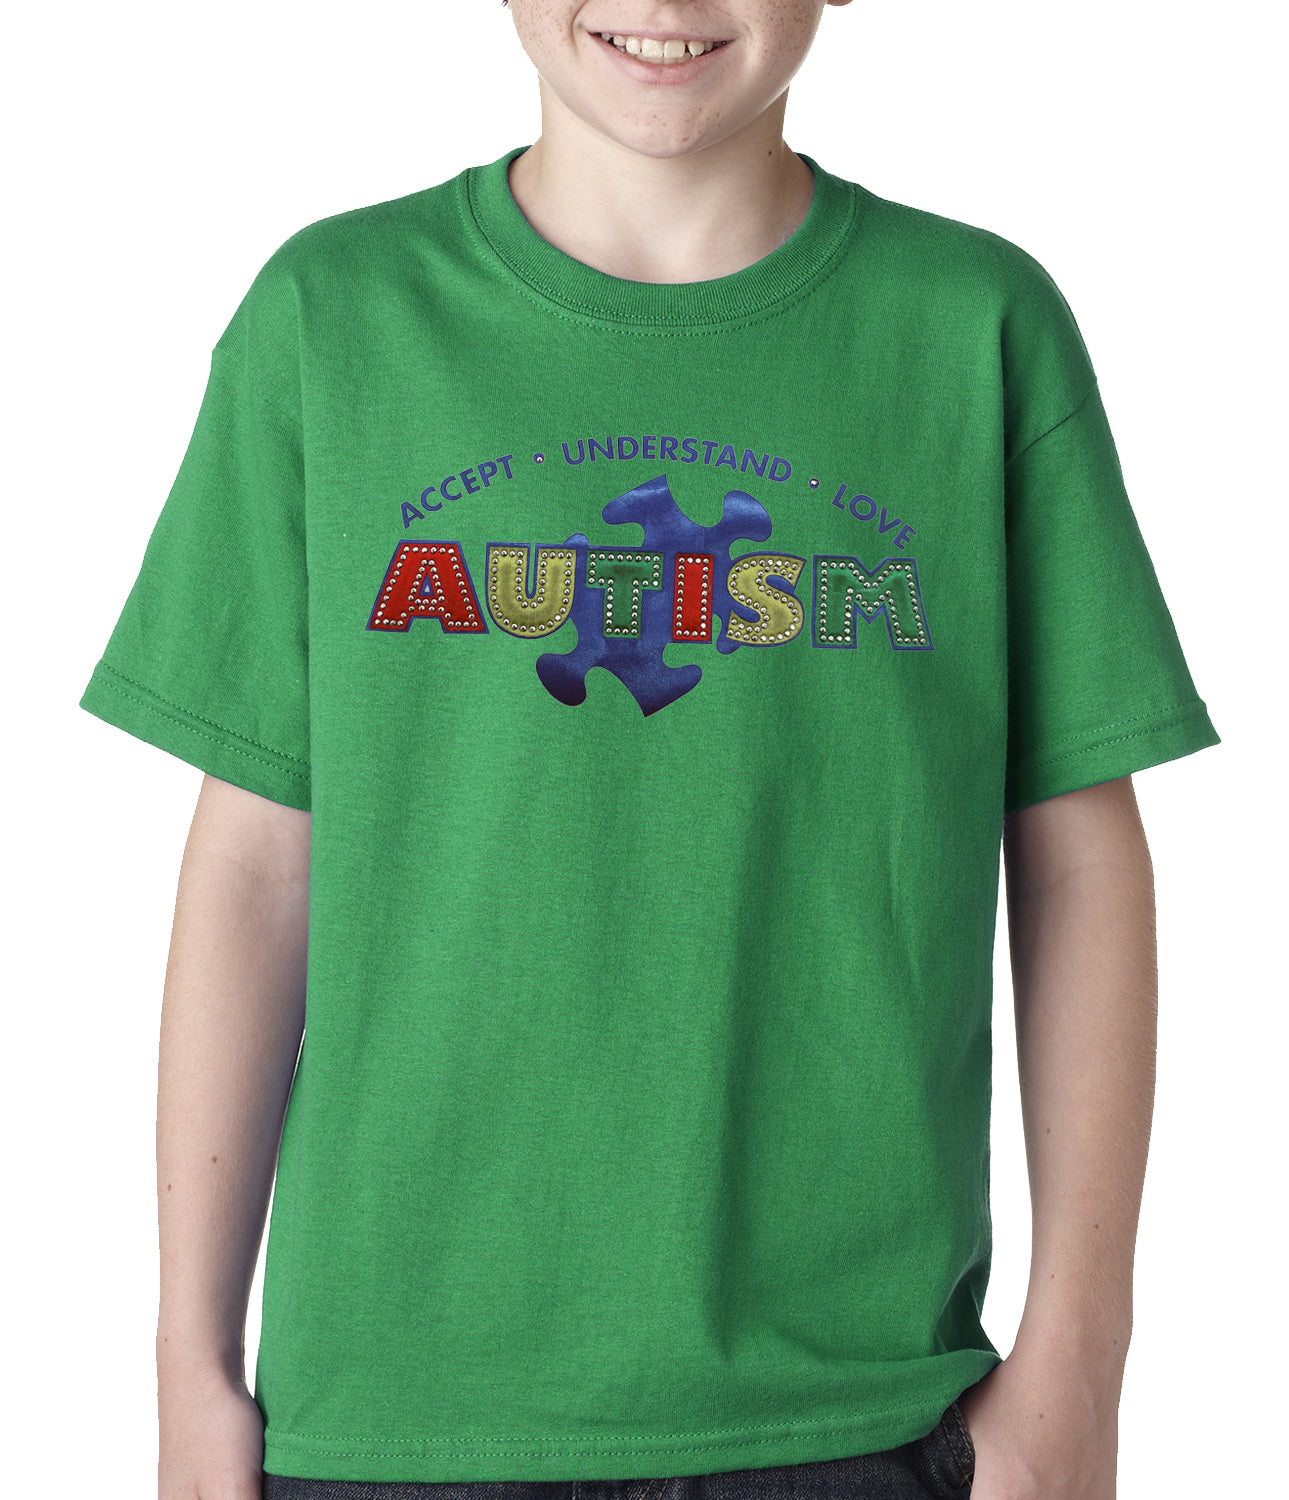 Autism Awareness - Accept, Understand, Love Kids T-shirt Kelly Green